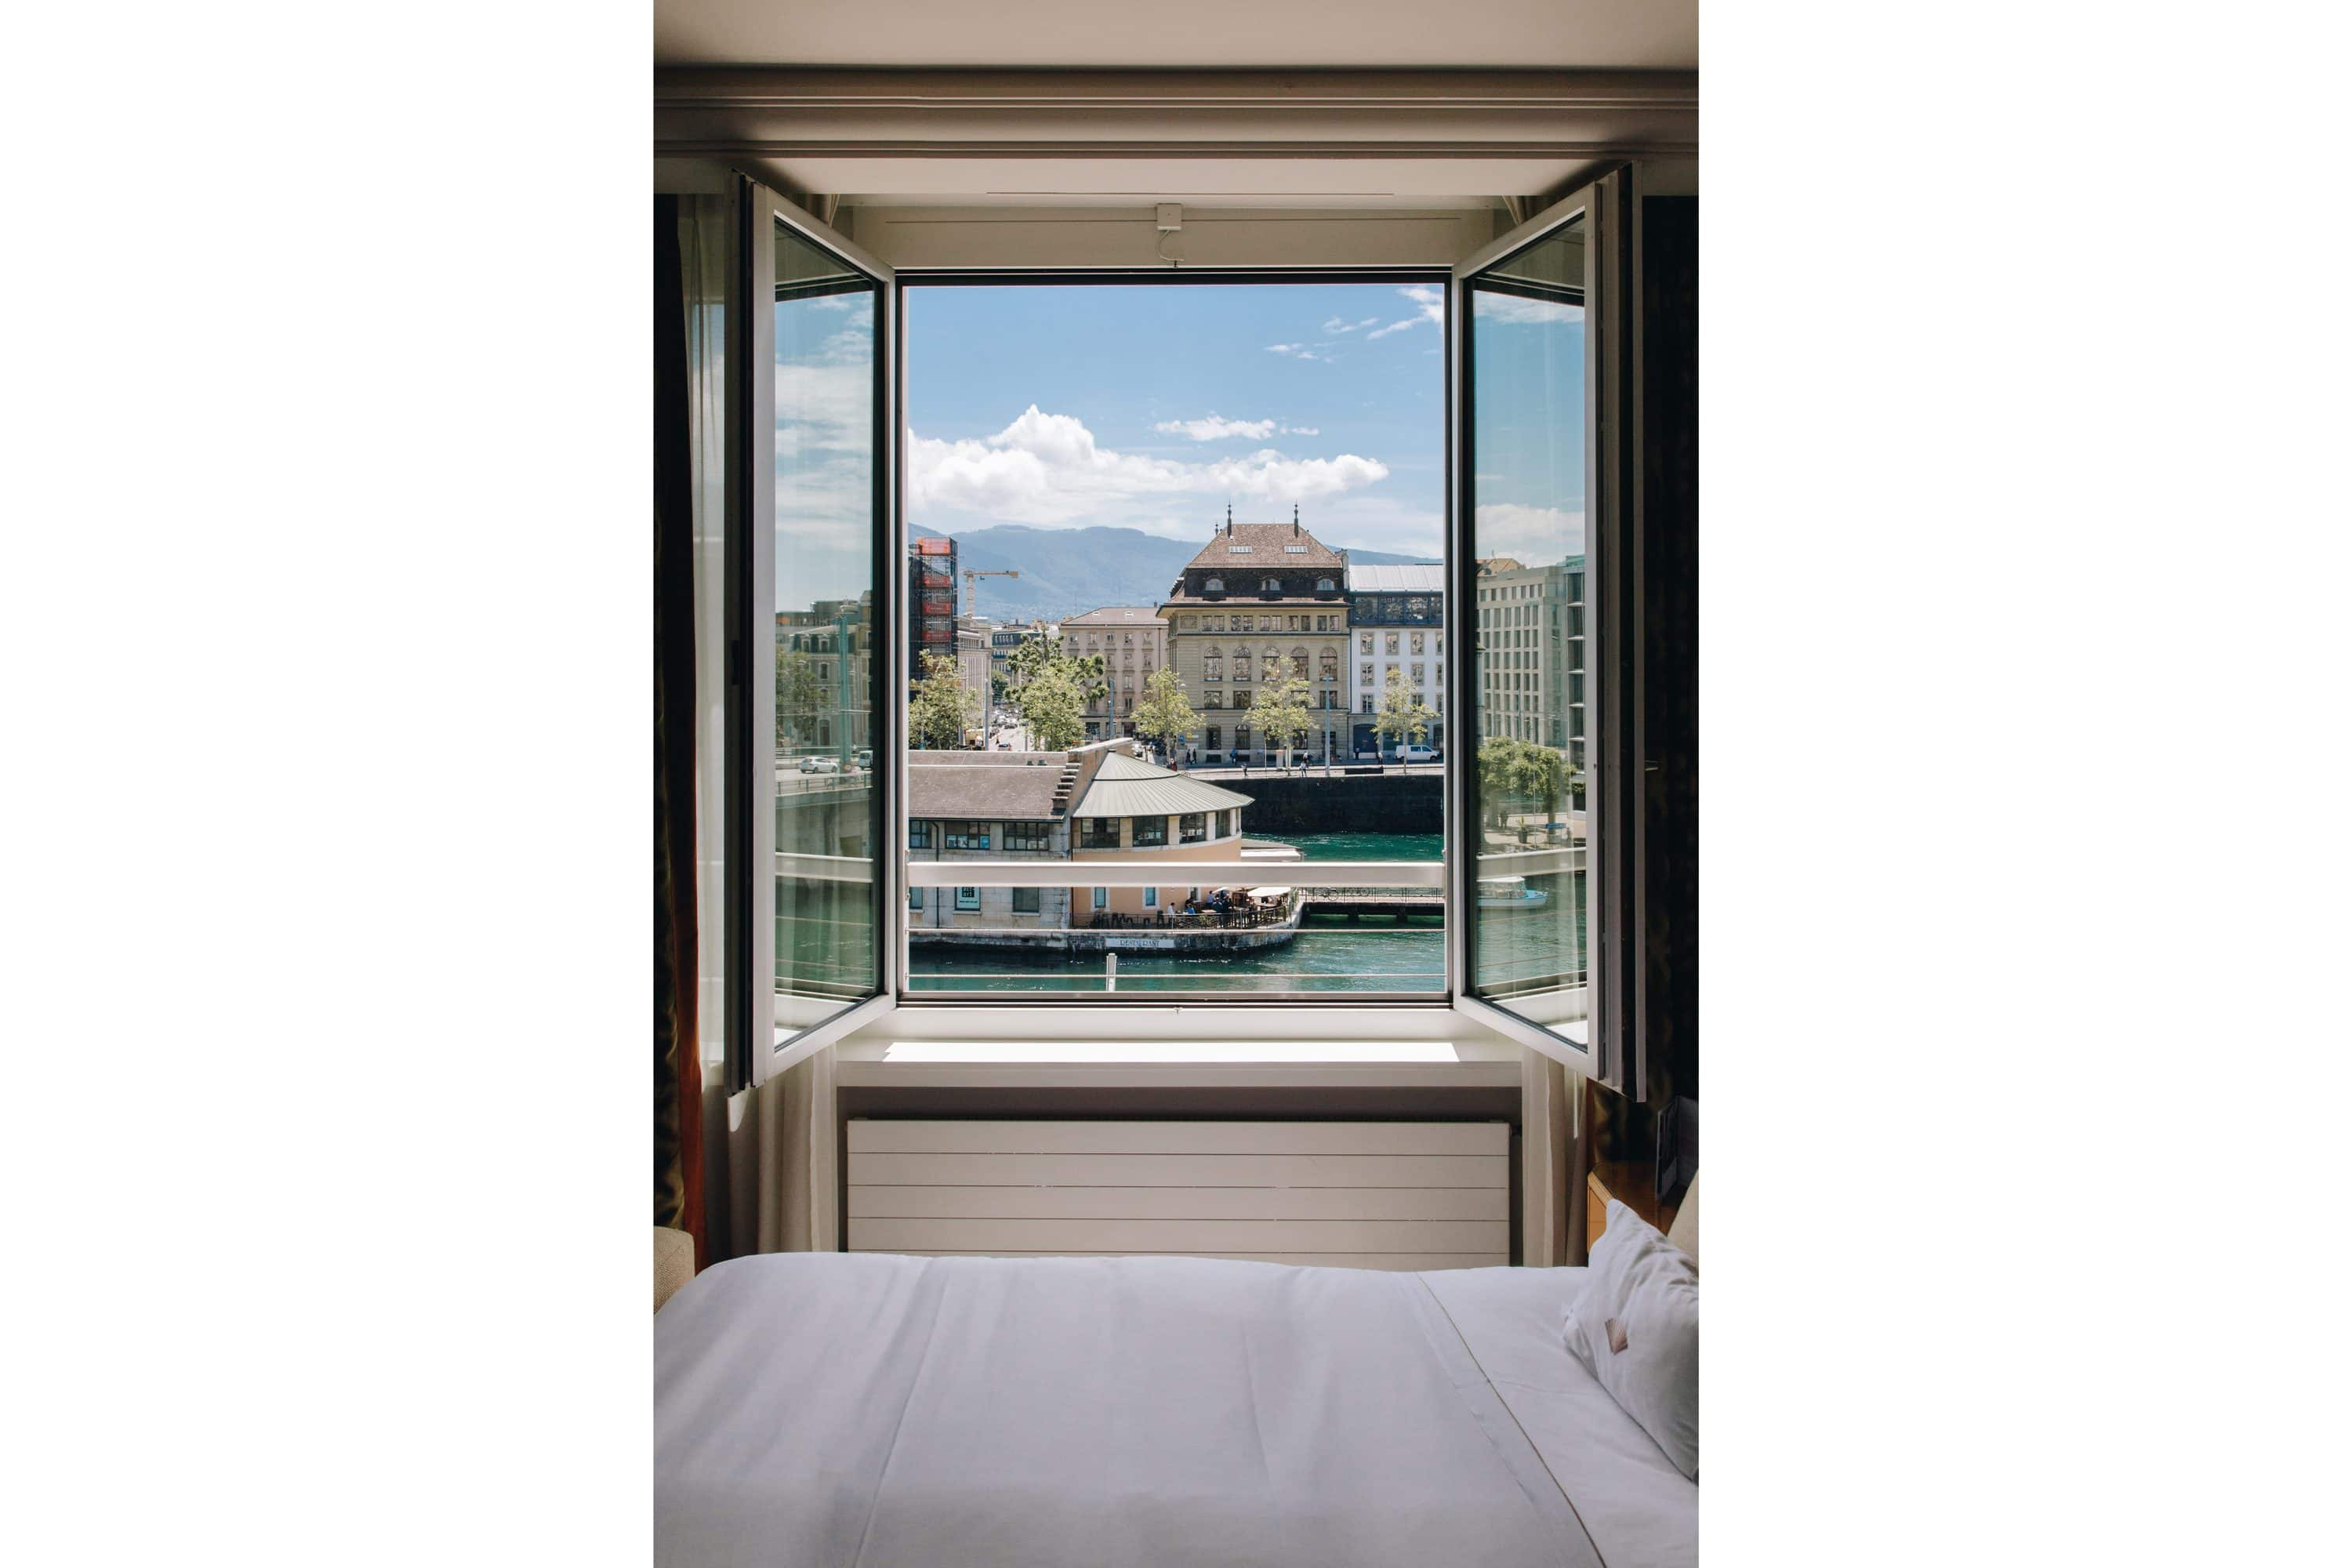 View of the river from a room at Mandarin Oriental, Geneva